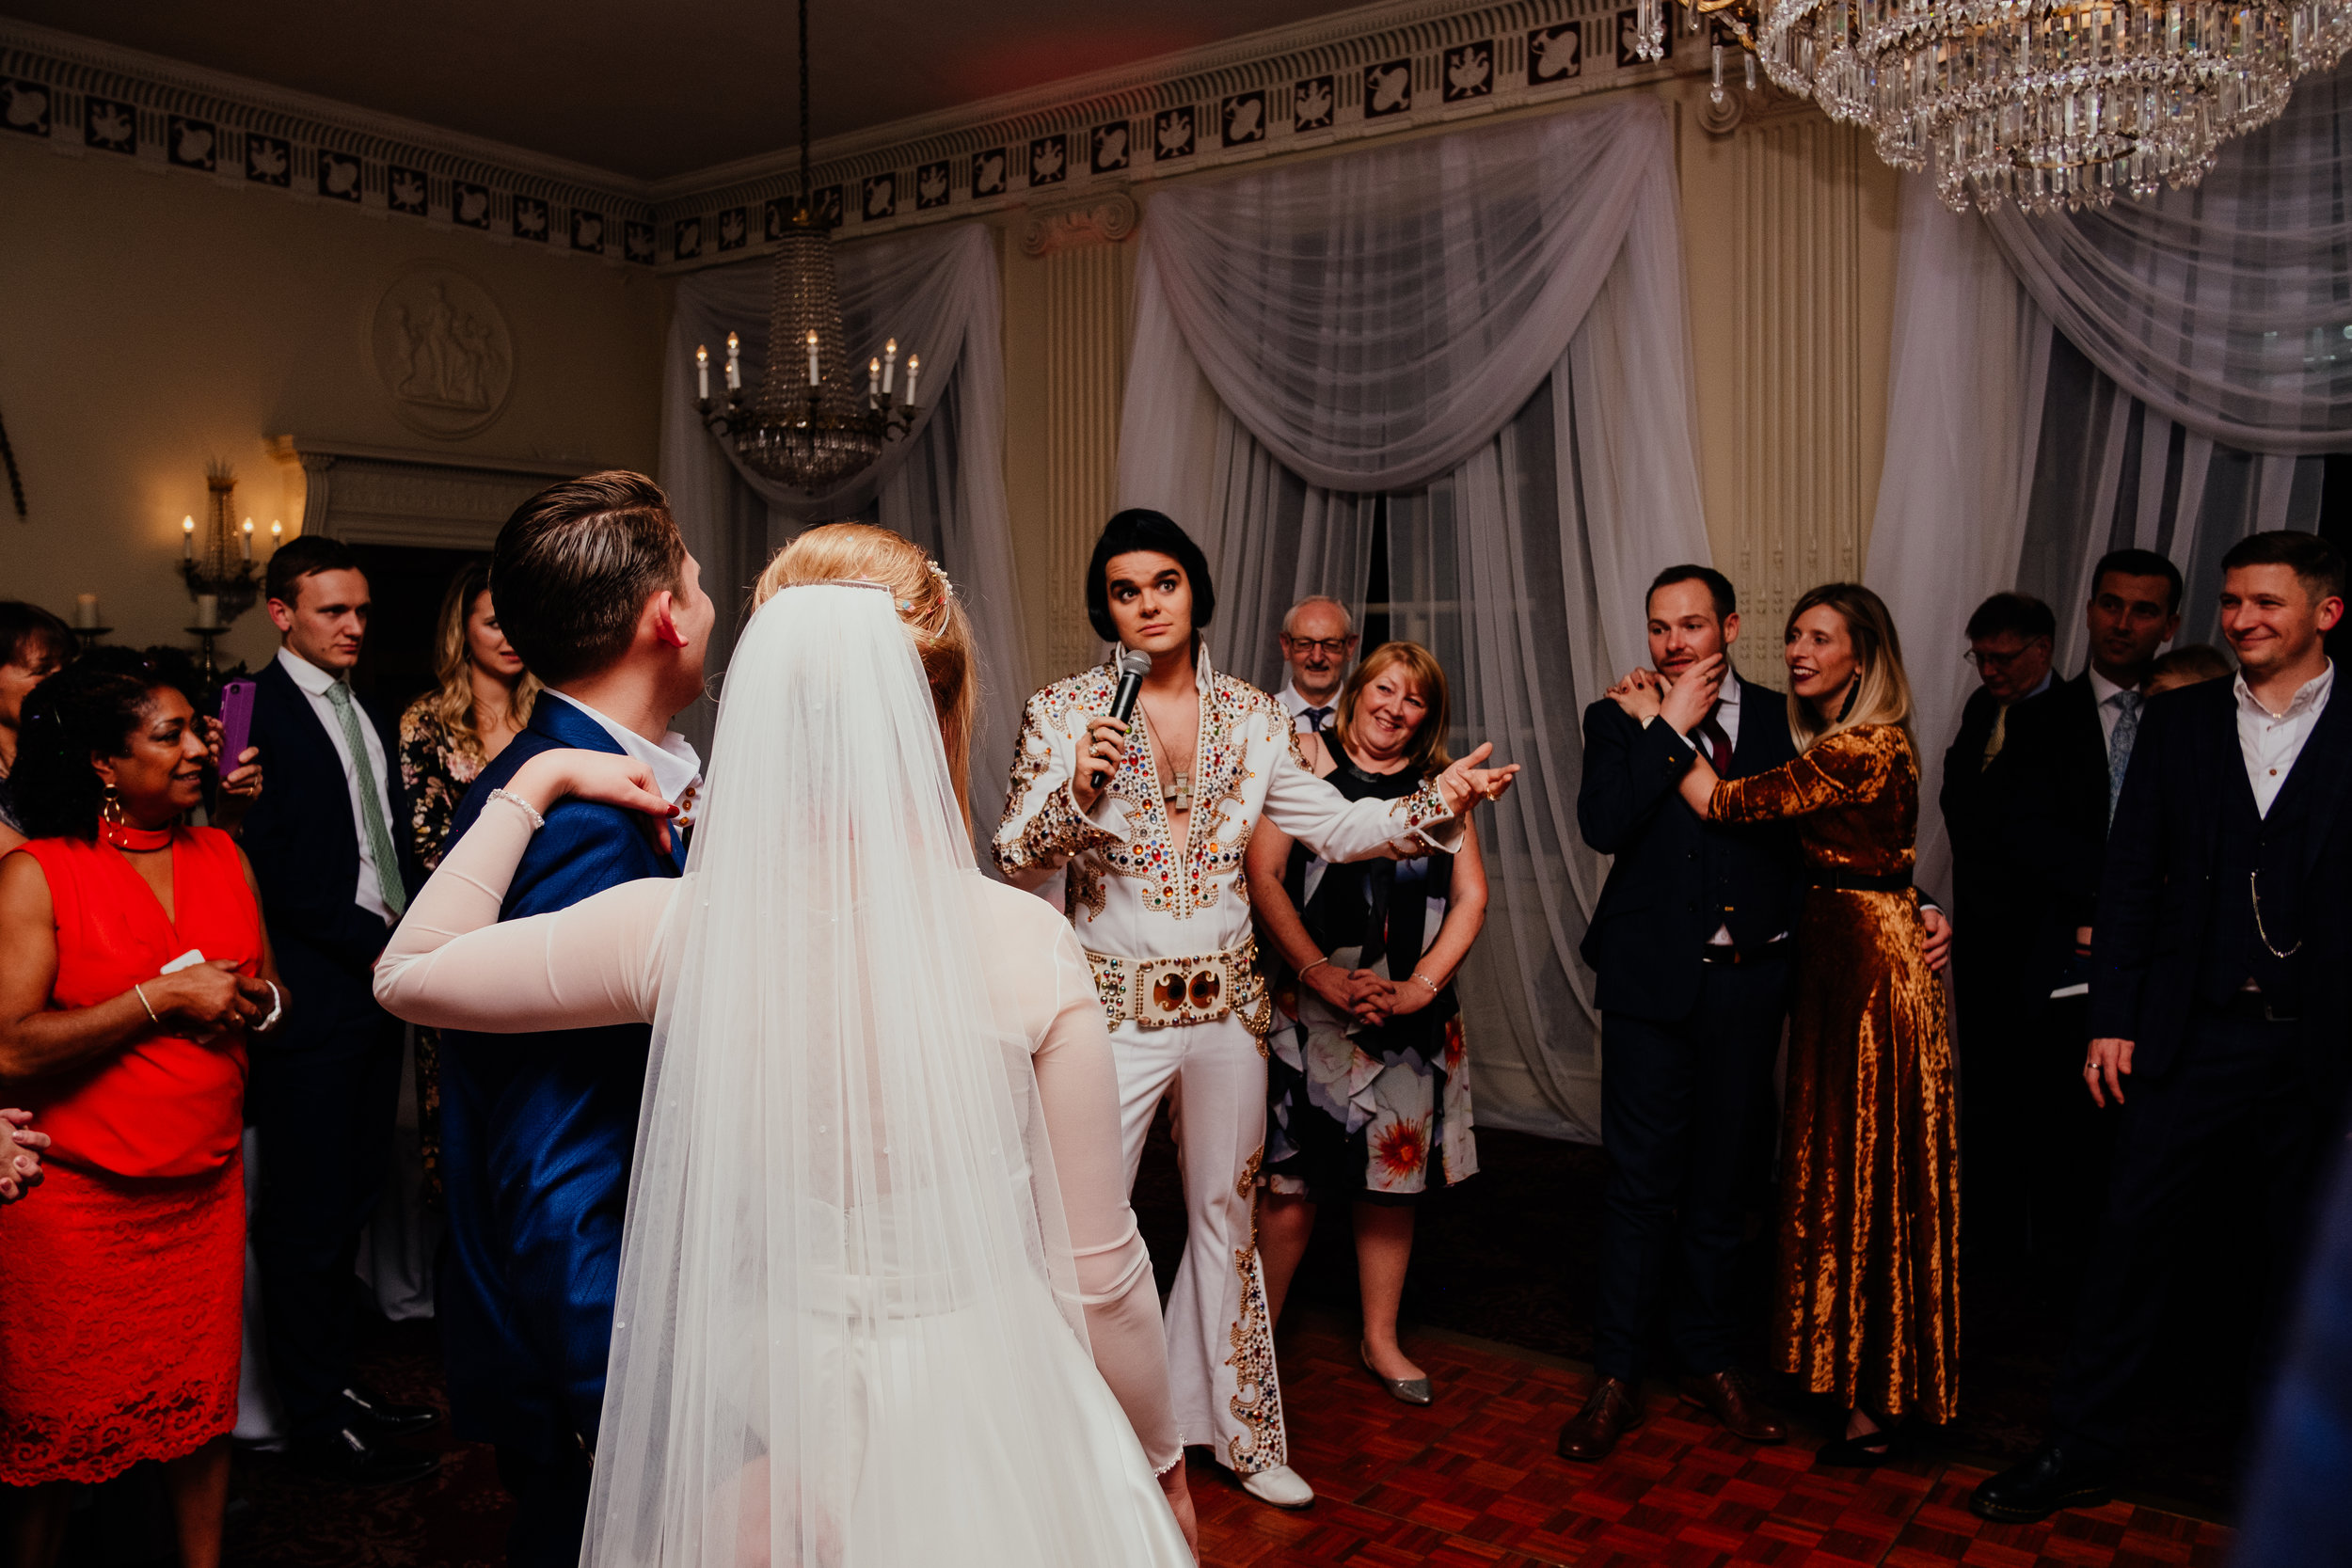 Buxted House Hotel autumn wedding first dance with Elvis impersonator